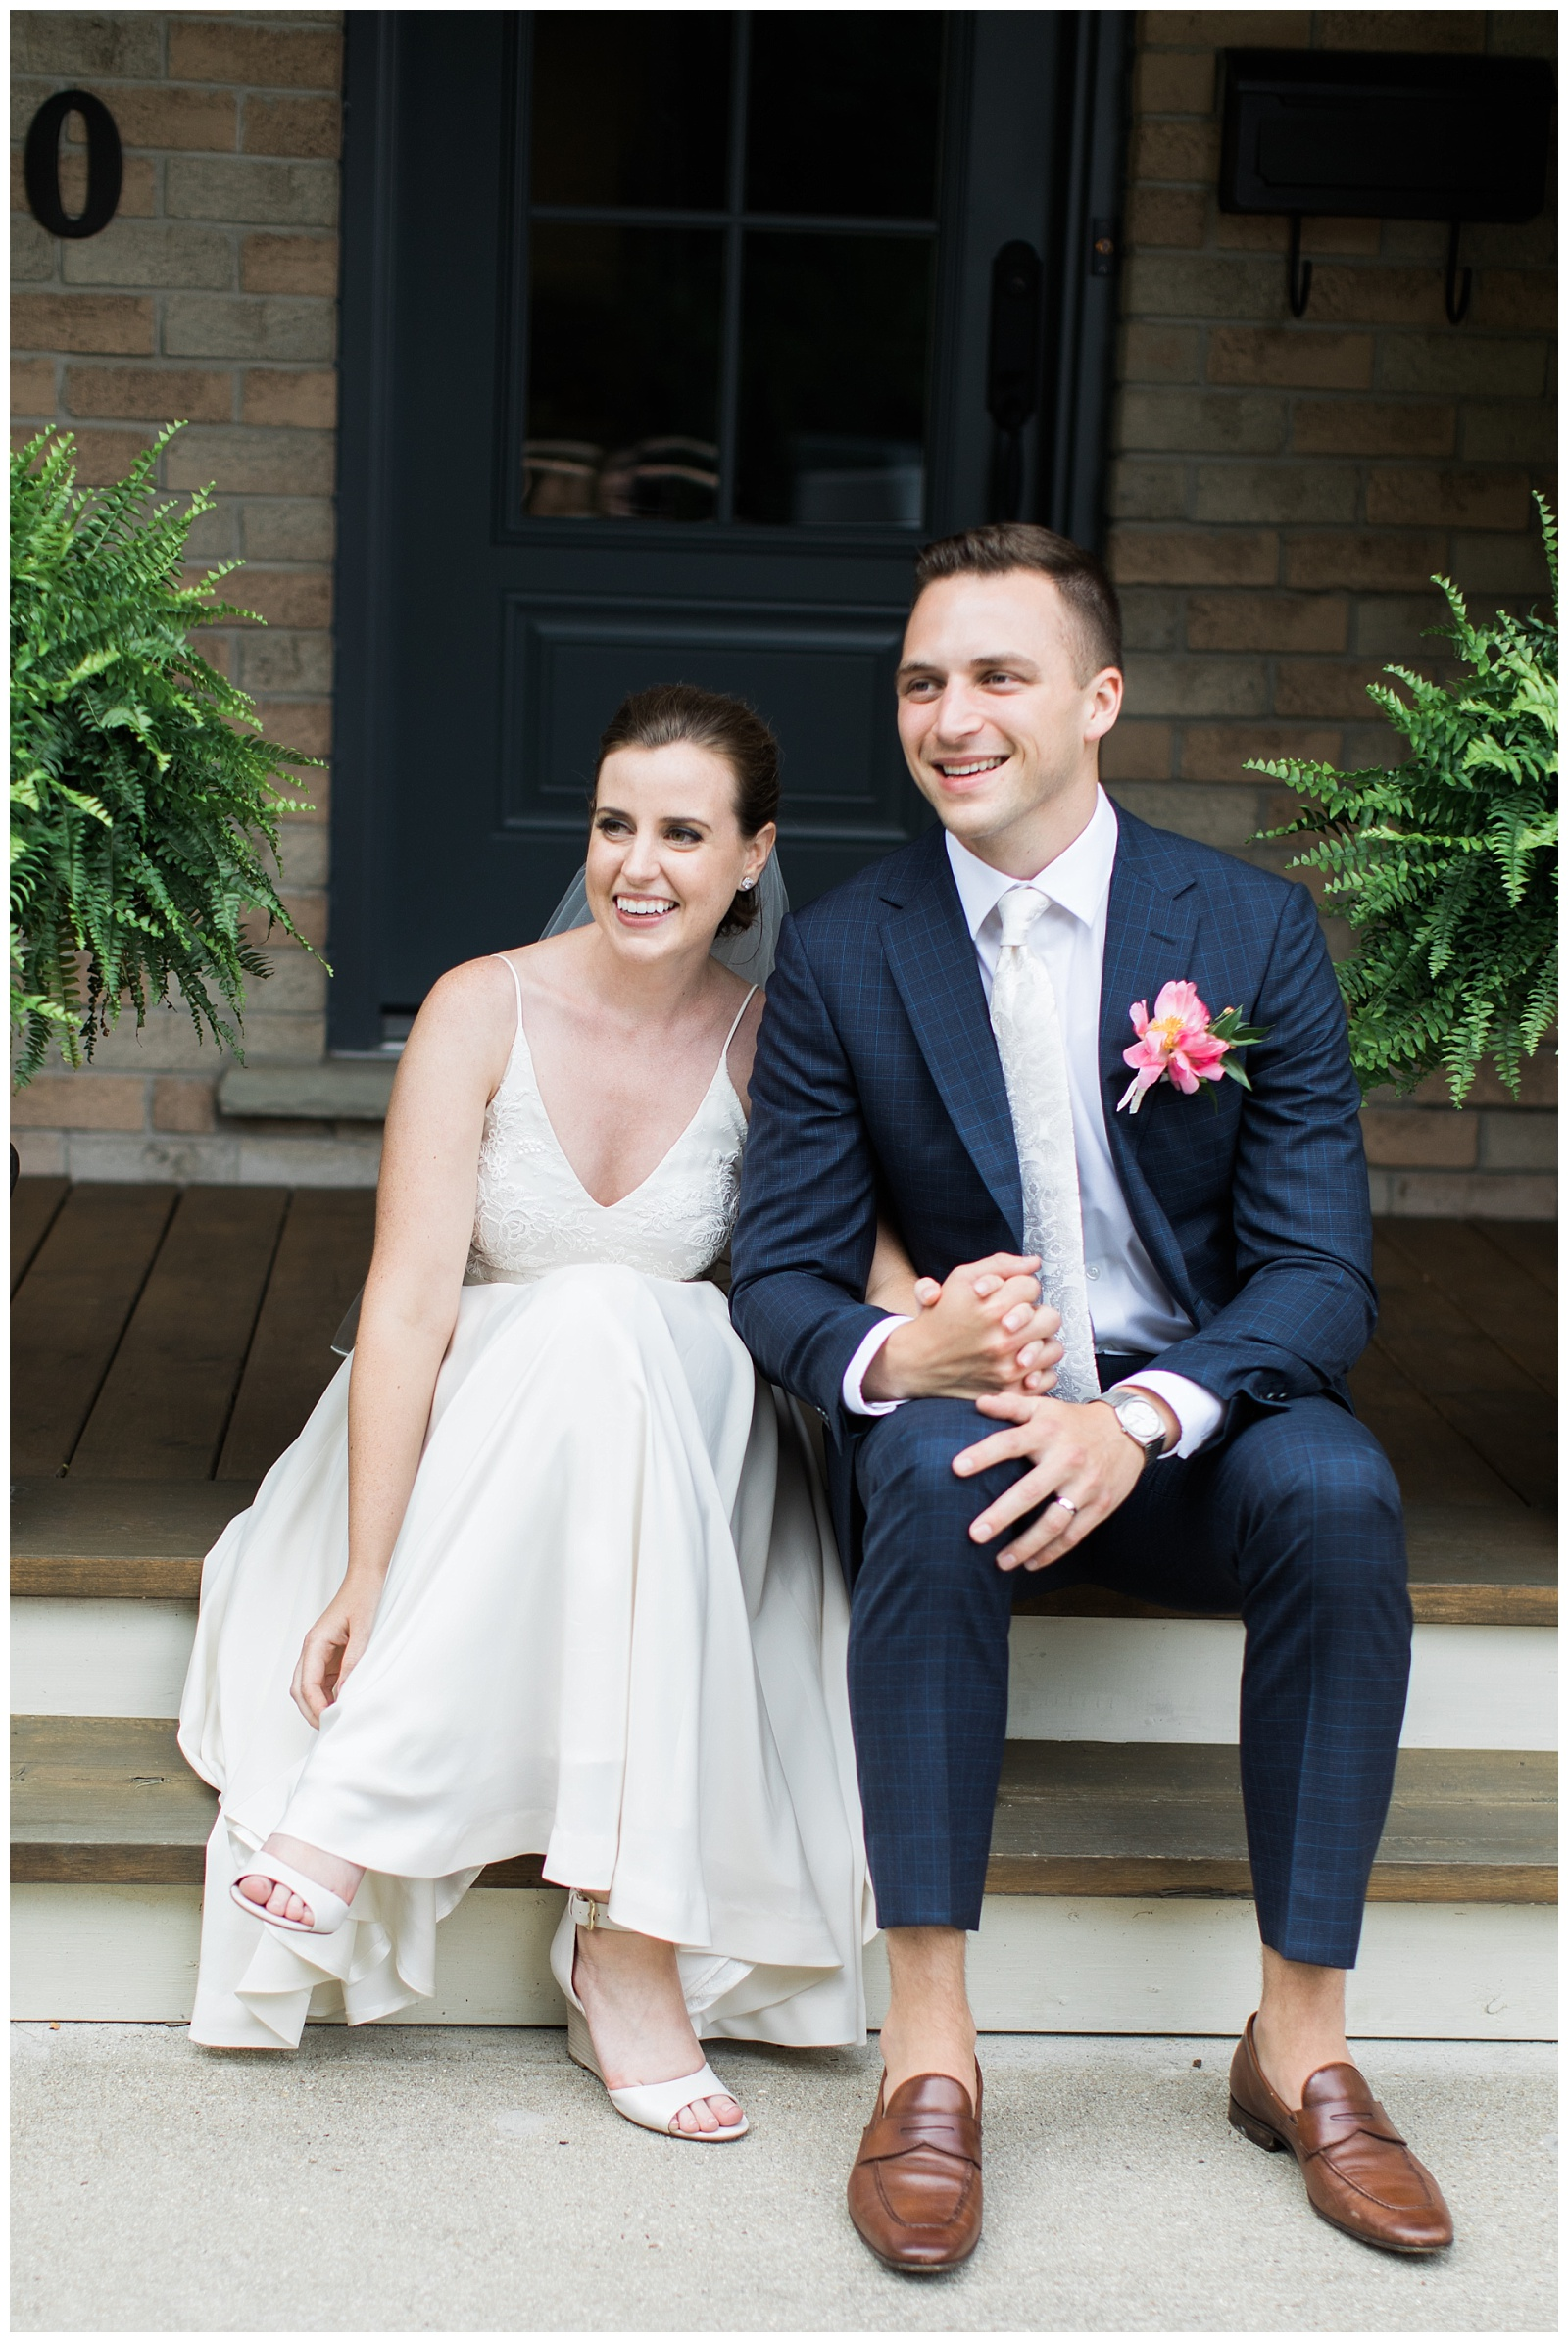 Bride and Groom holding hands and sitting on porch at Guelph Ontario Wedding | Ontario Wedding Photographer | Toronto Wedding Photographer | 3photography